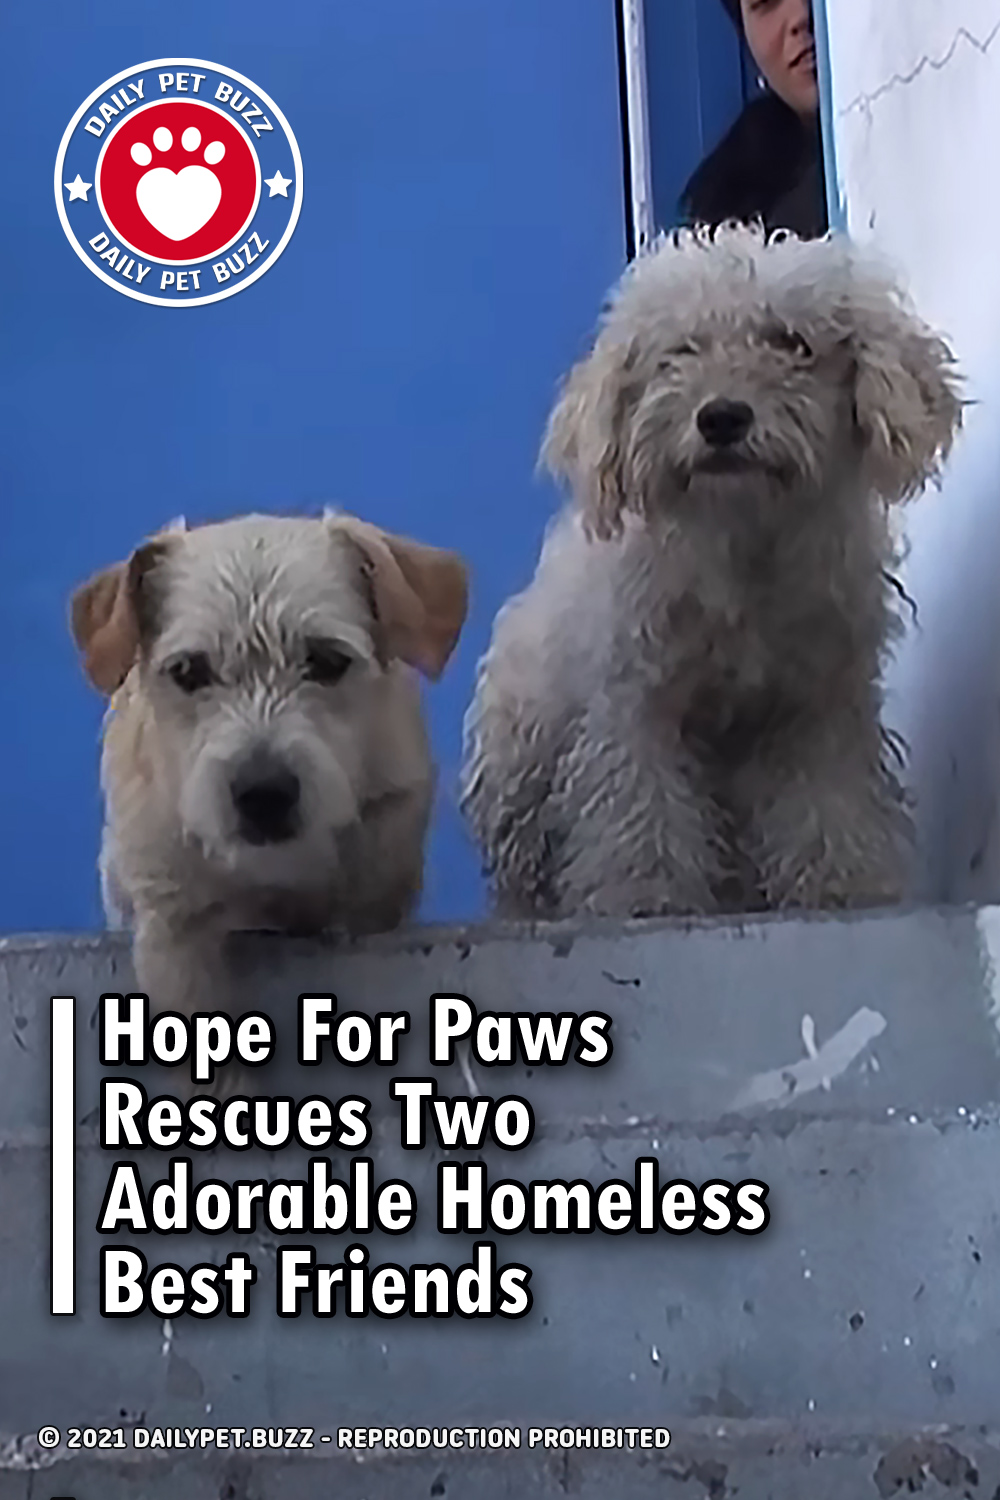 Hope For Paws Rescues Two Adorable Homeless Best Friends